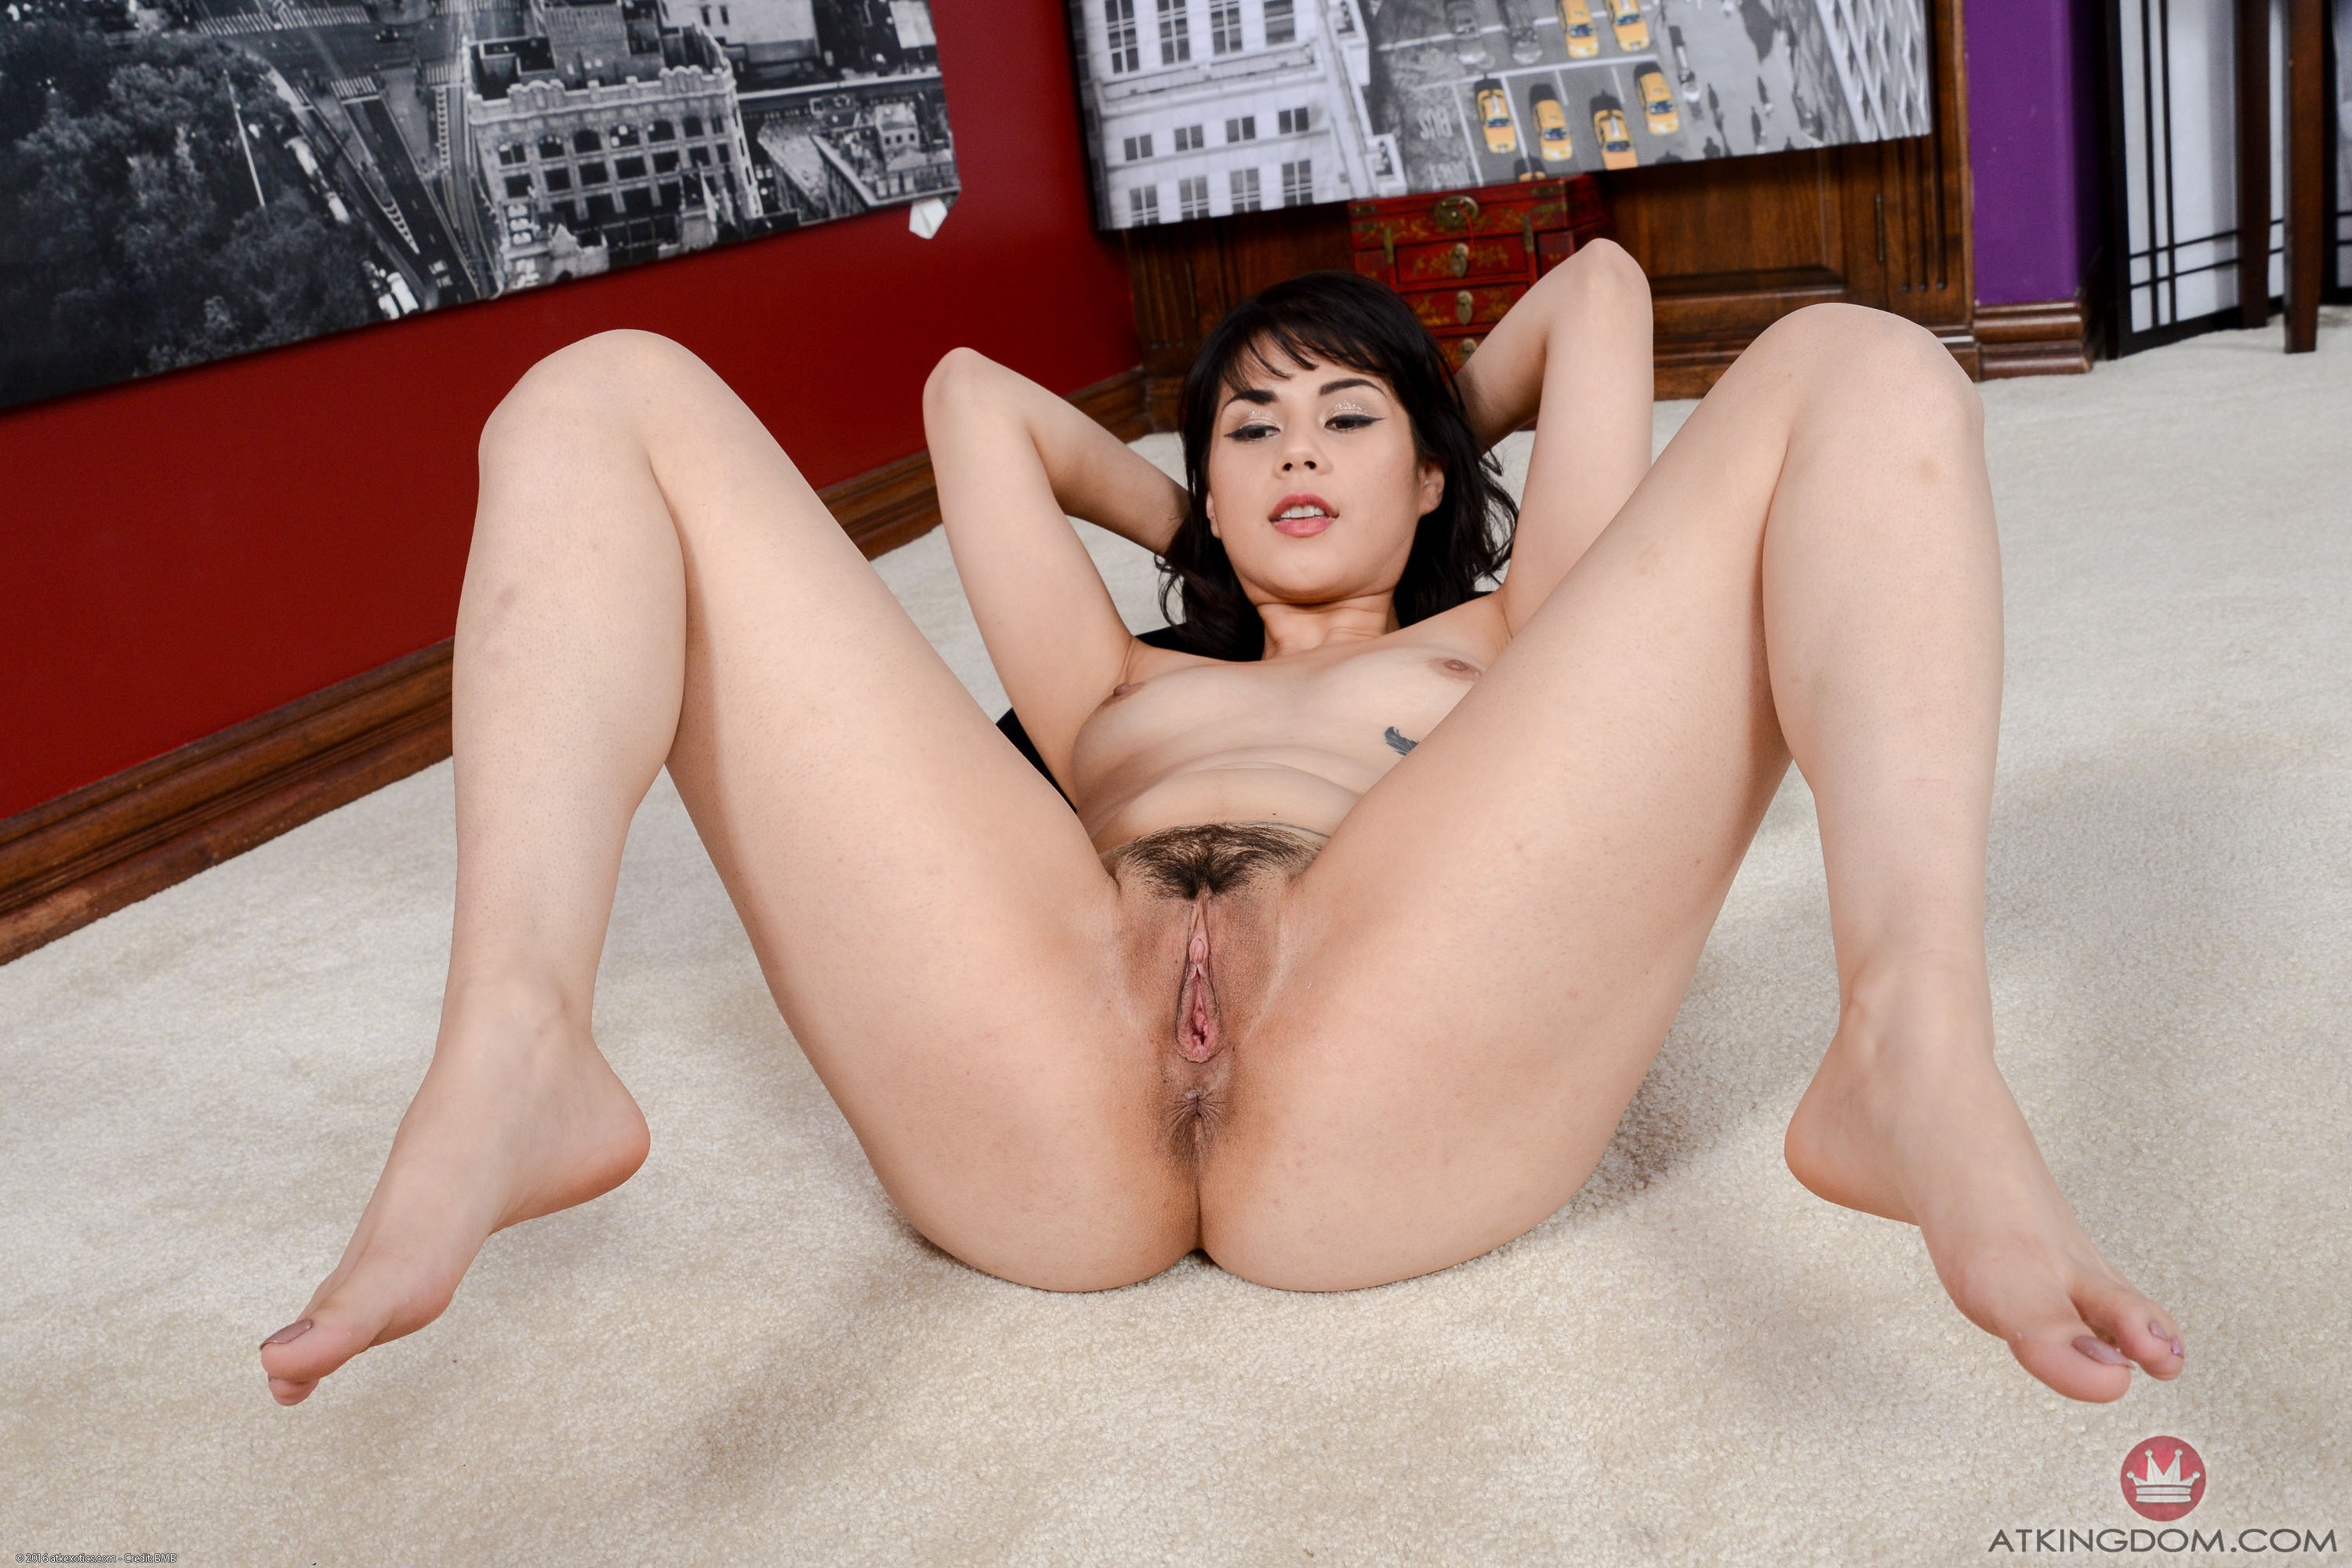 ANGIE: Penelope reed from atk hairy